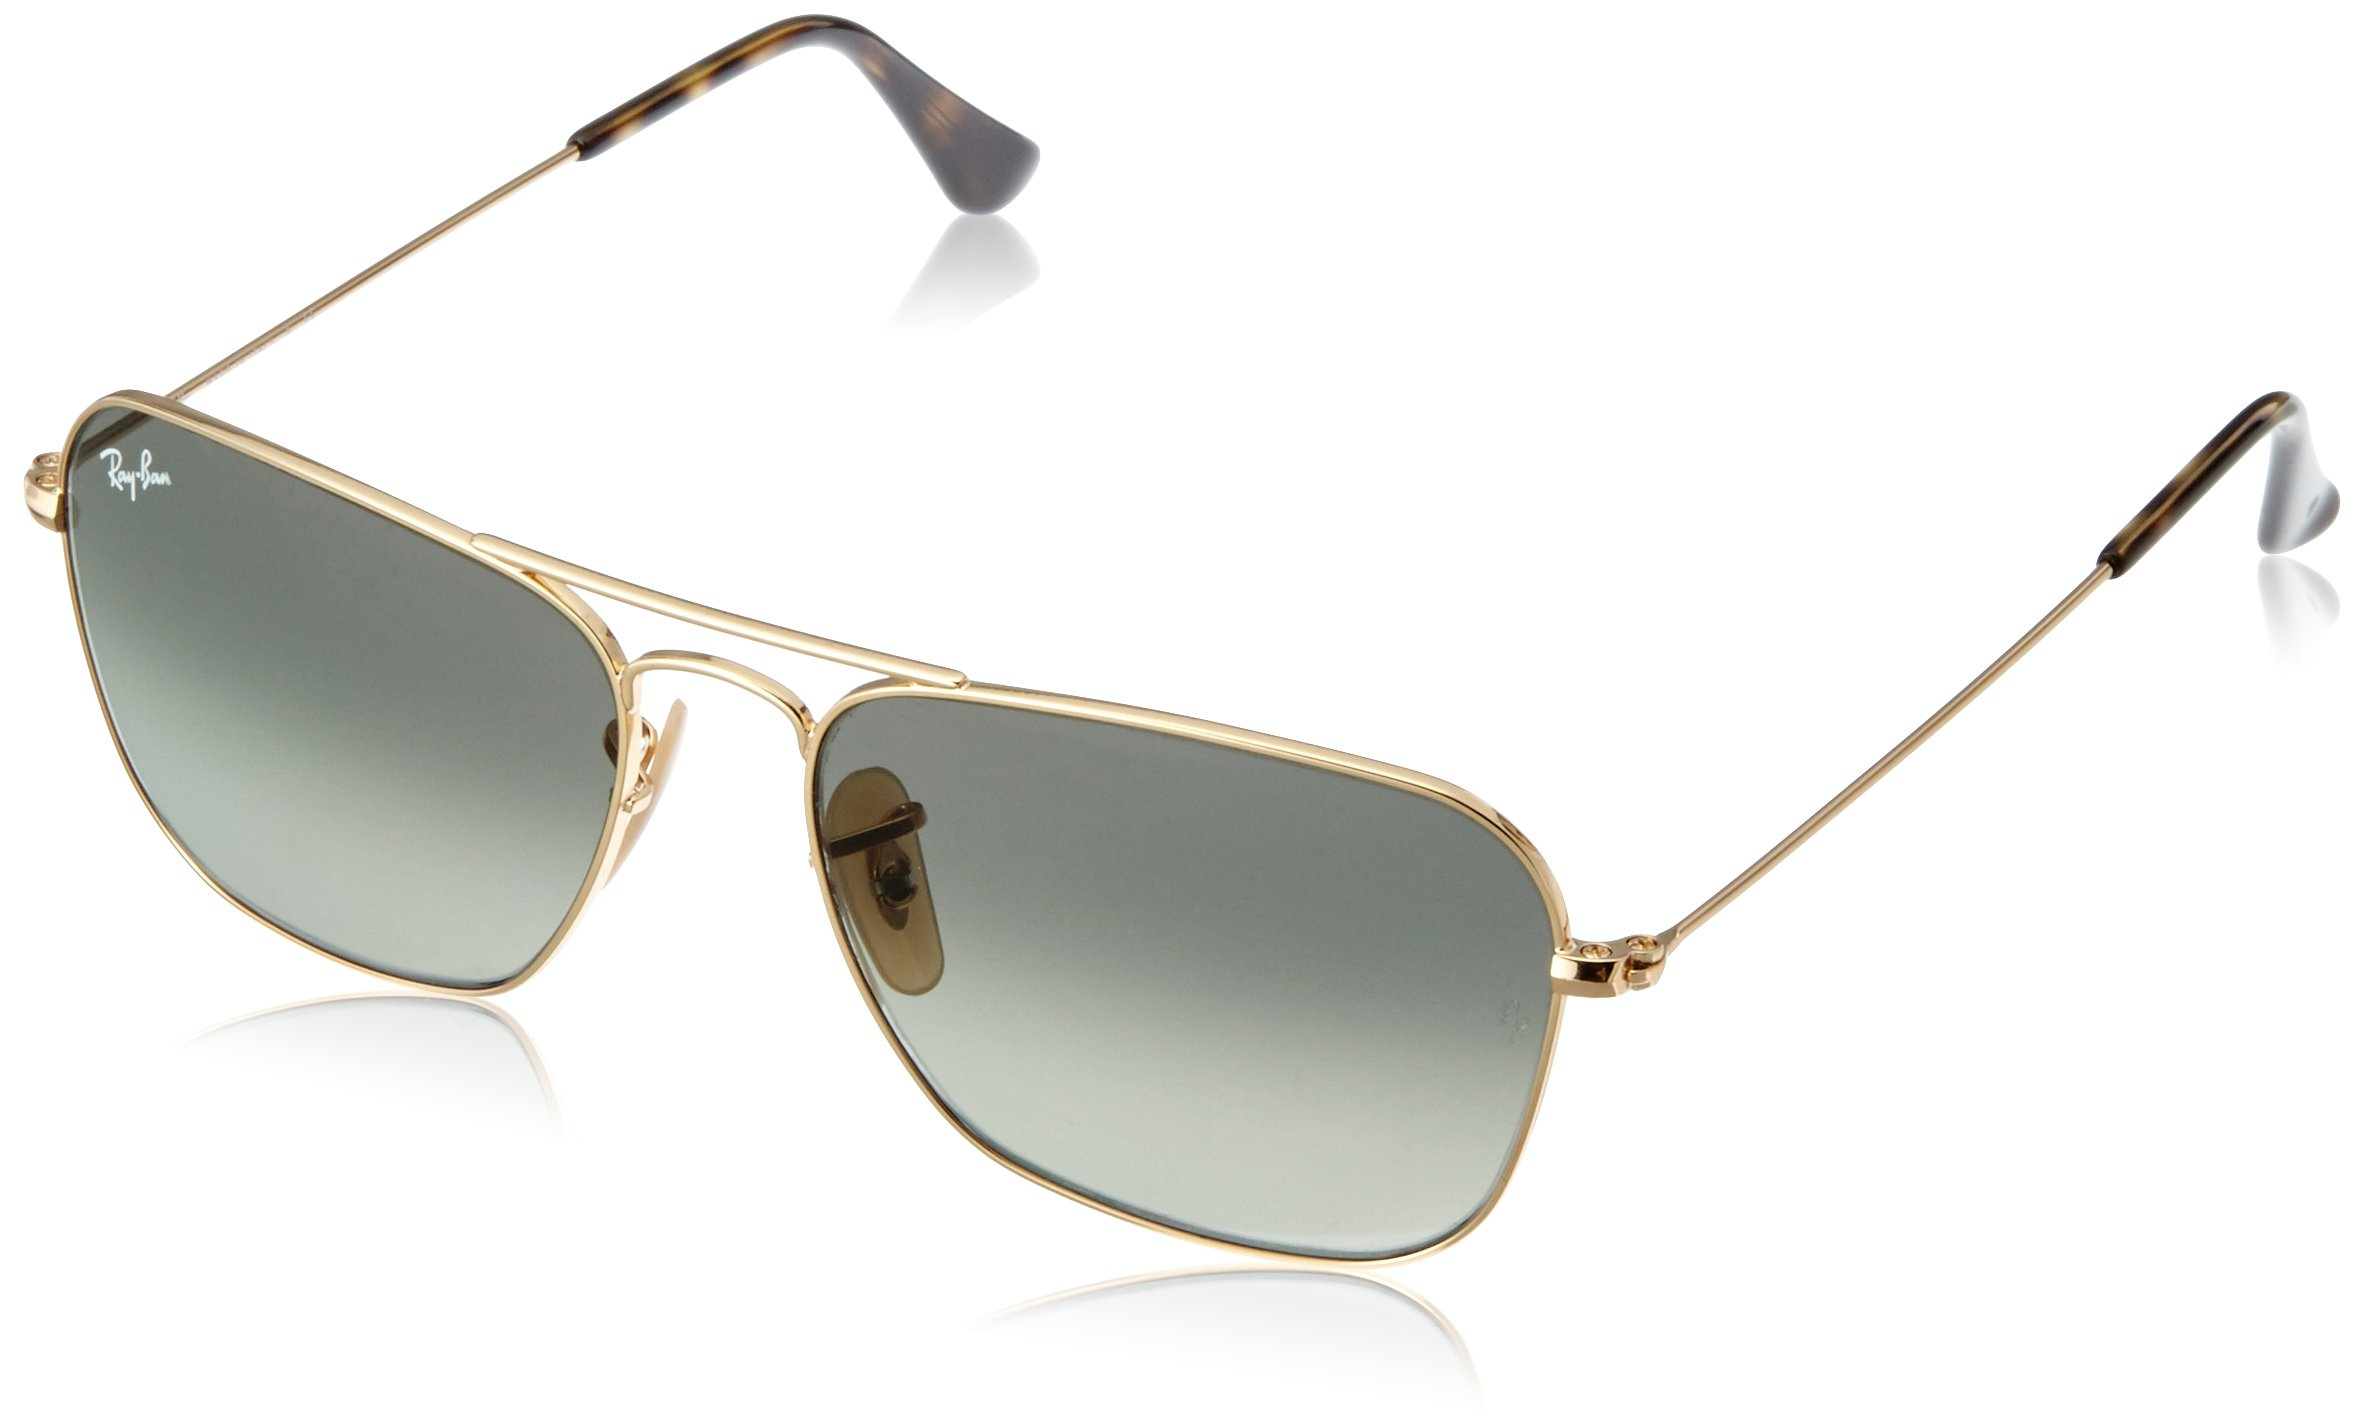 RAY-BAN RB3136 Caravan Square Sunglasses, Gold/Grey Gradient, 55 mm by RAY-BAN